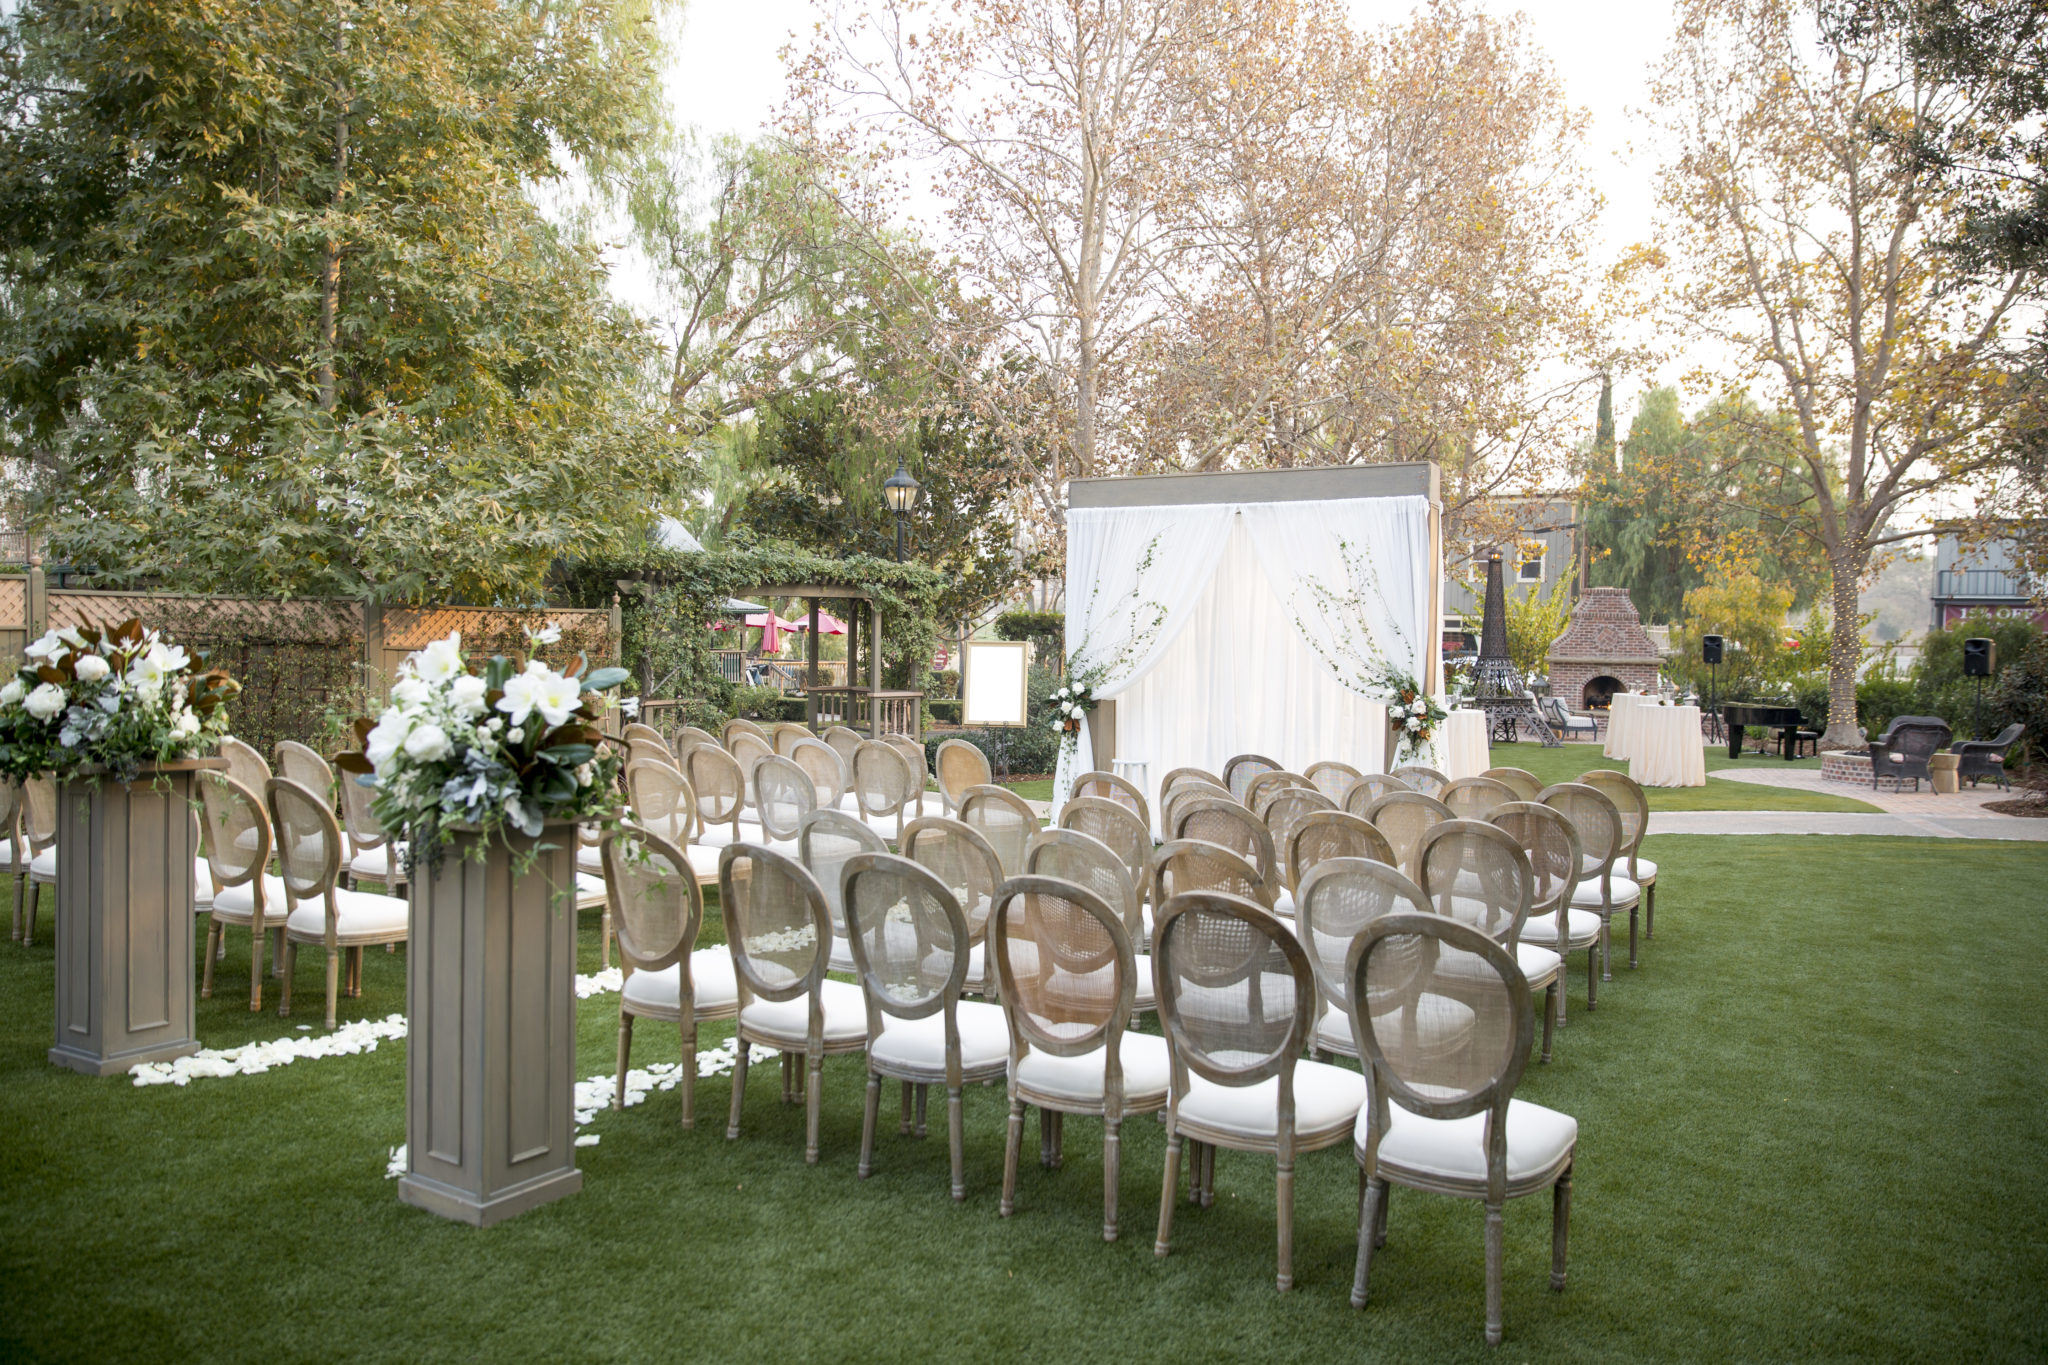 Garden Area outdoor wedding ceremony setup